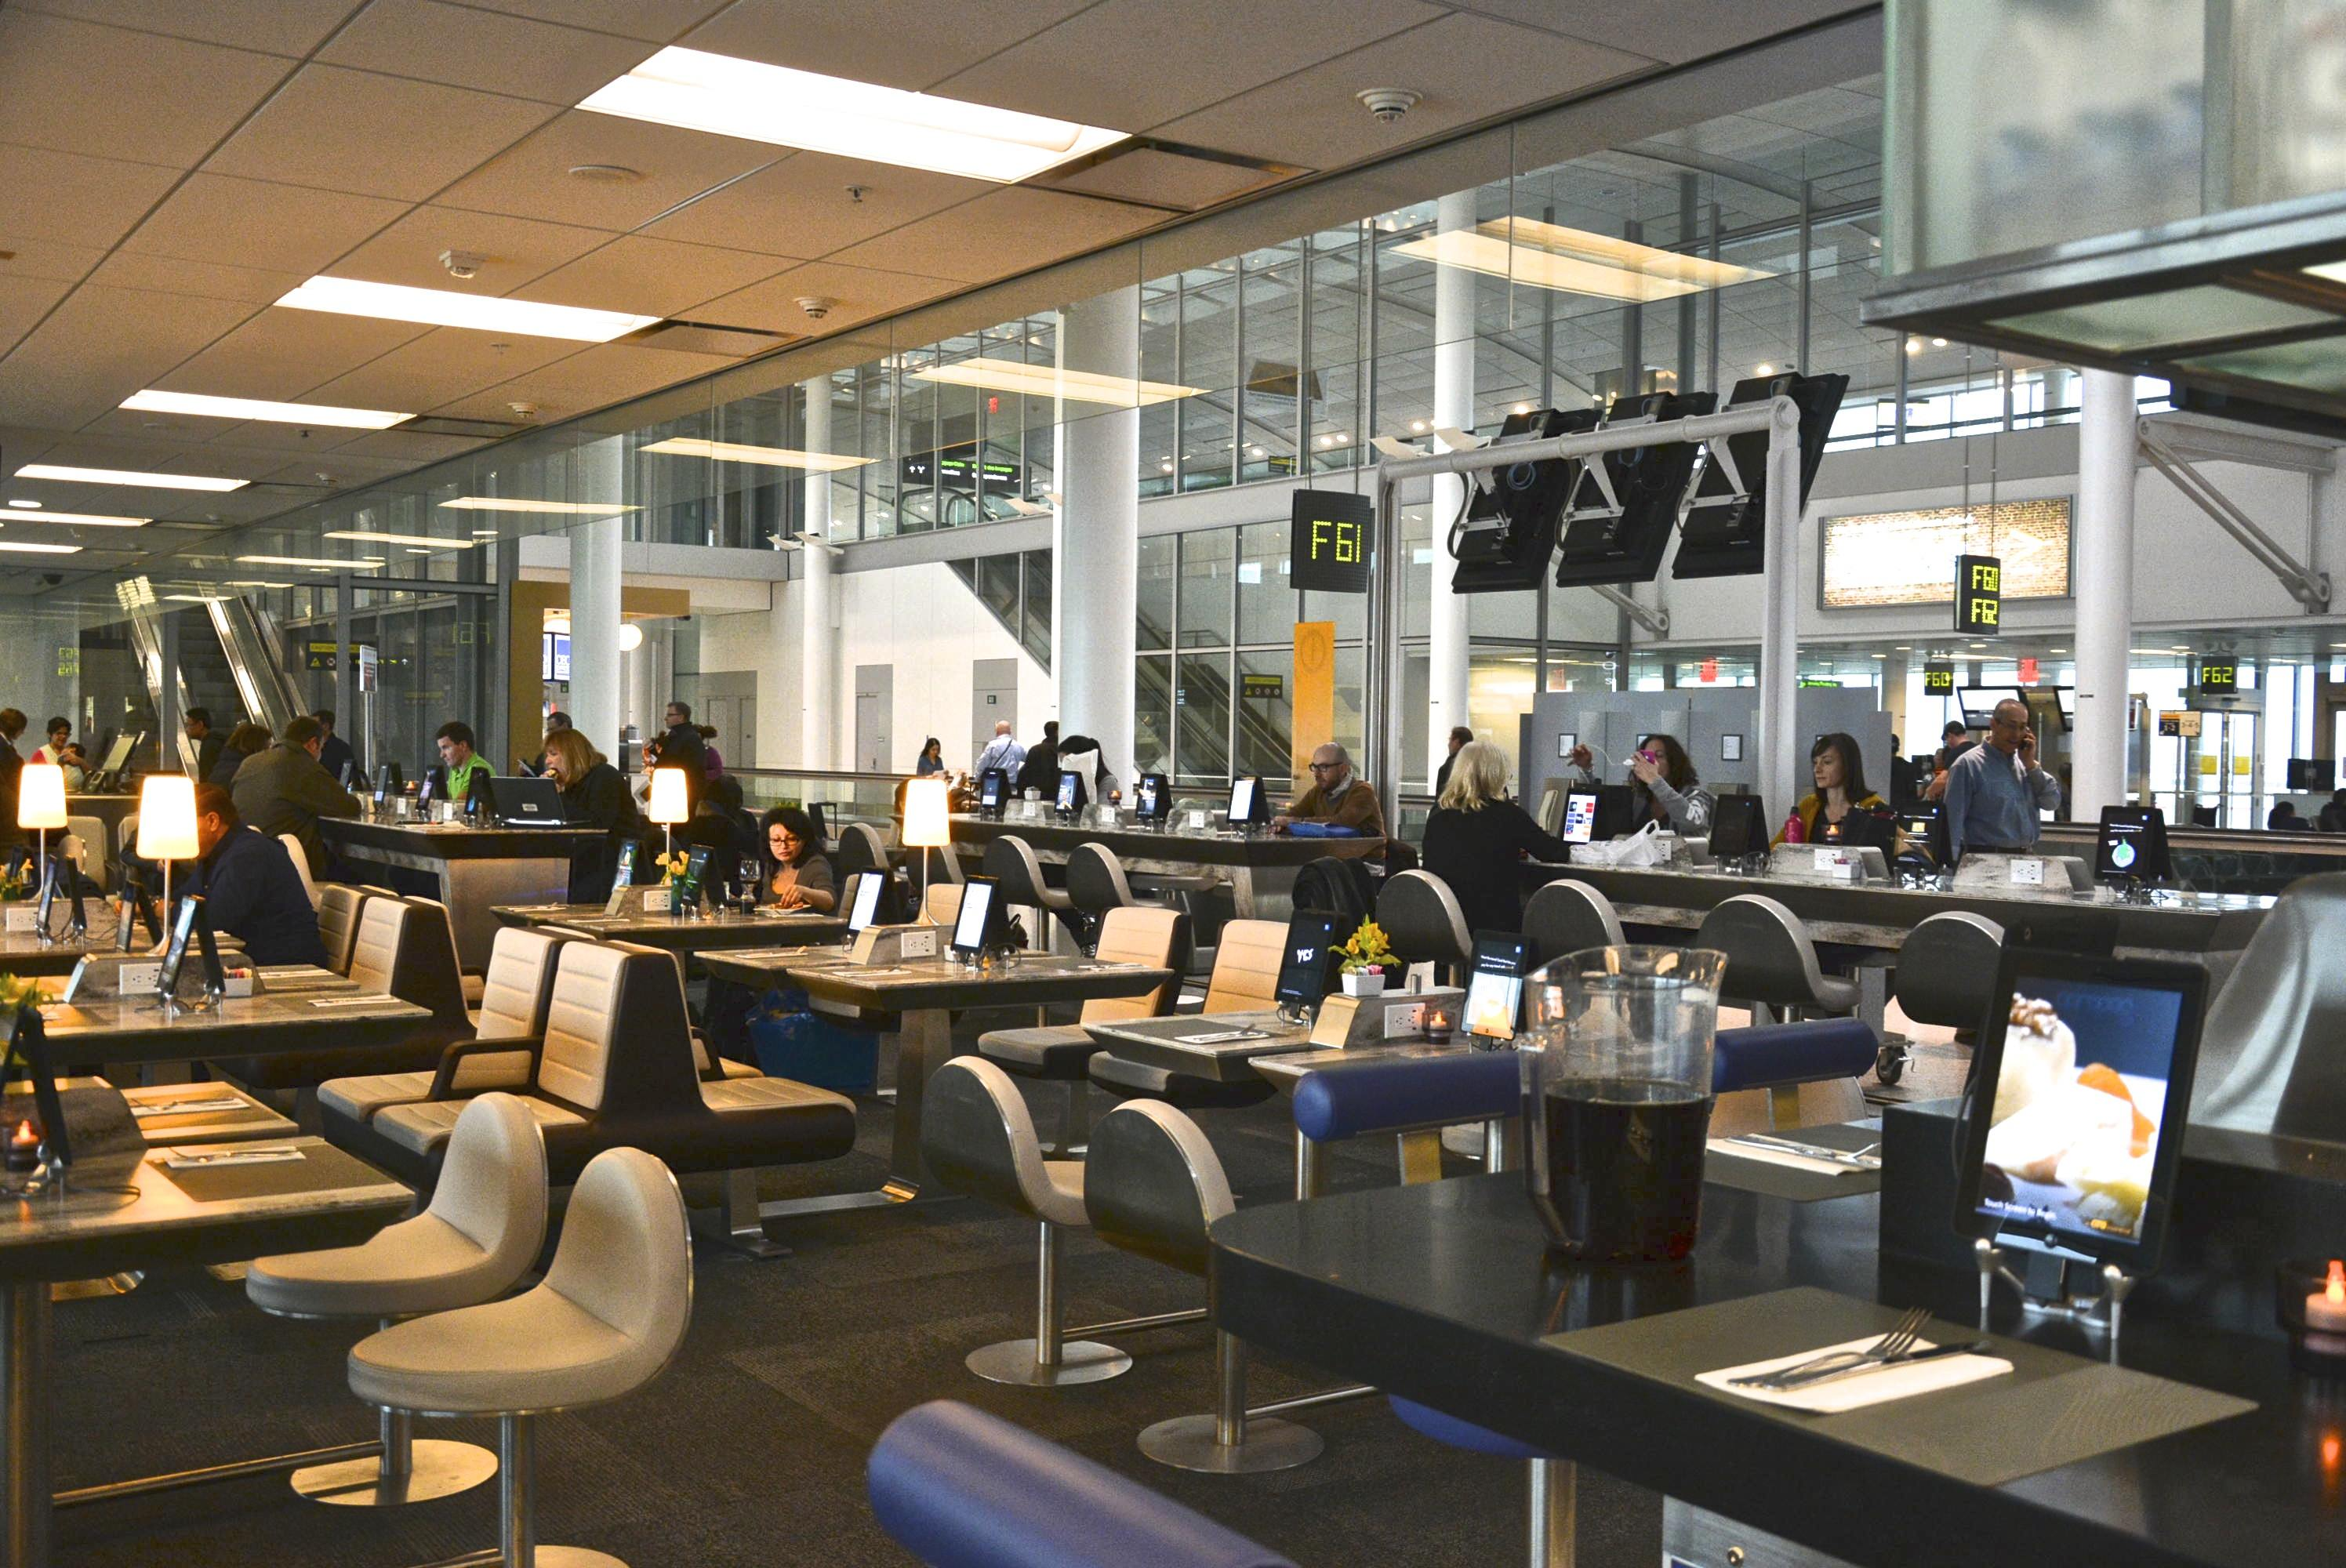 the chefs have landed at torontos pearson airport